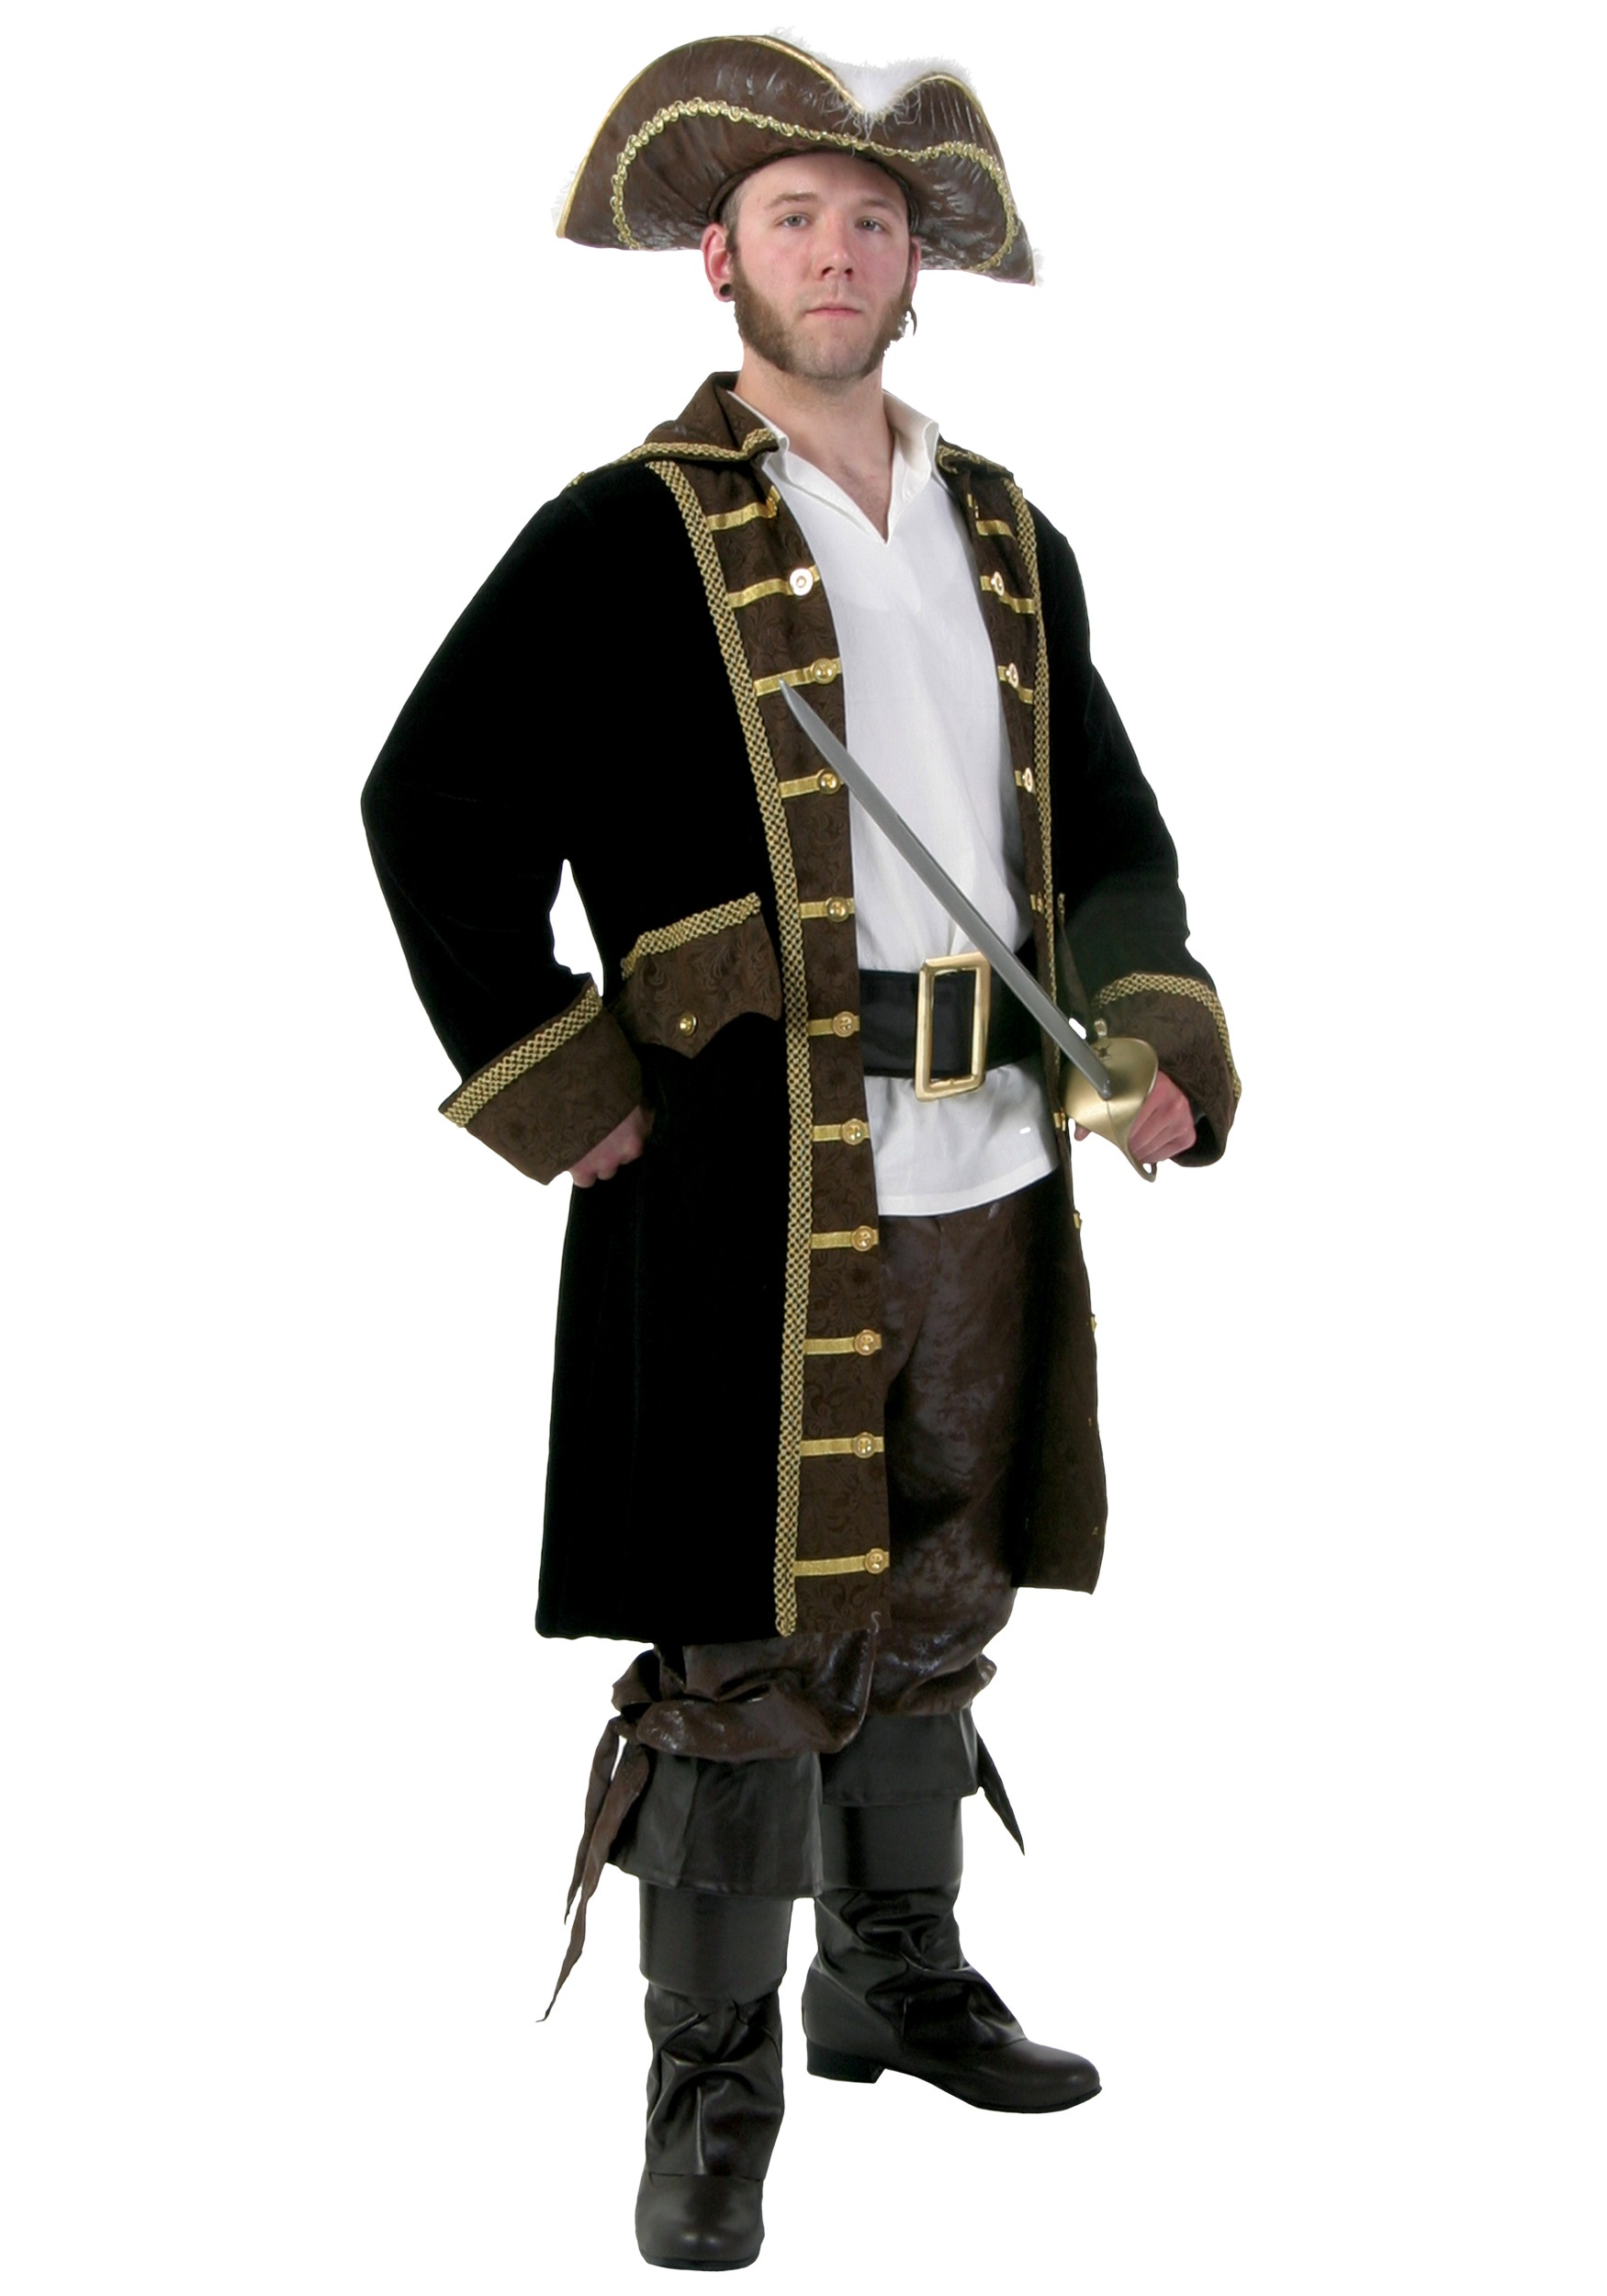 Menu0027s Plus Size Realistic Pirate Costume  sc 1 st  Halloween Costumes & Menu0027s Plus Size Realistic Pirate Costume 2X 3X 4X 5X 6X